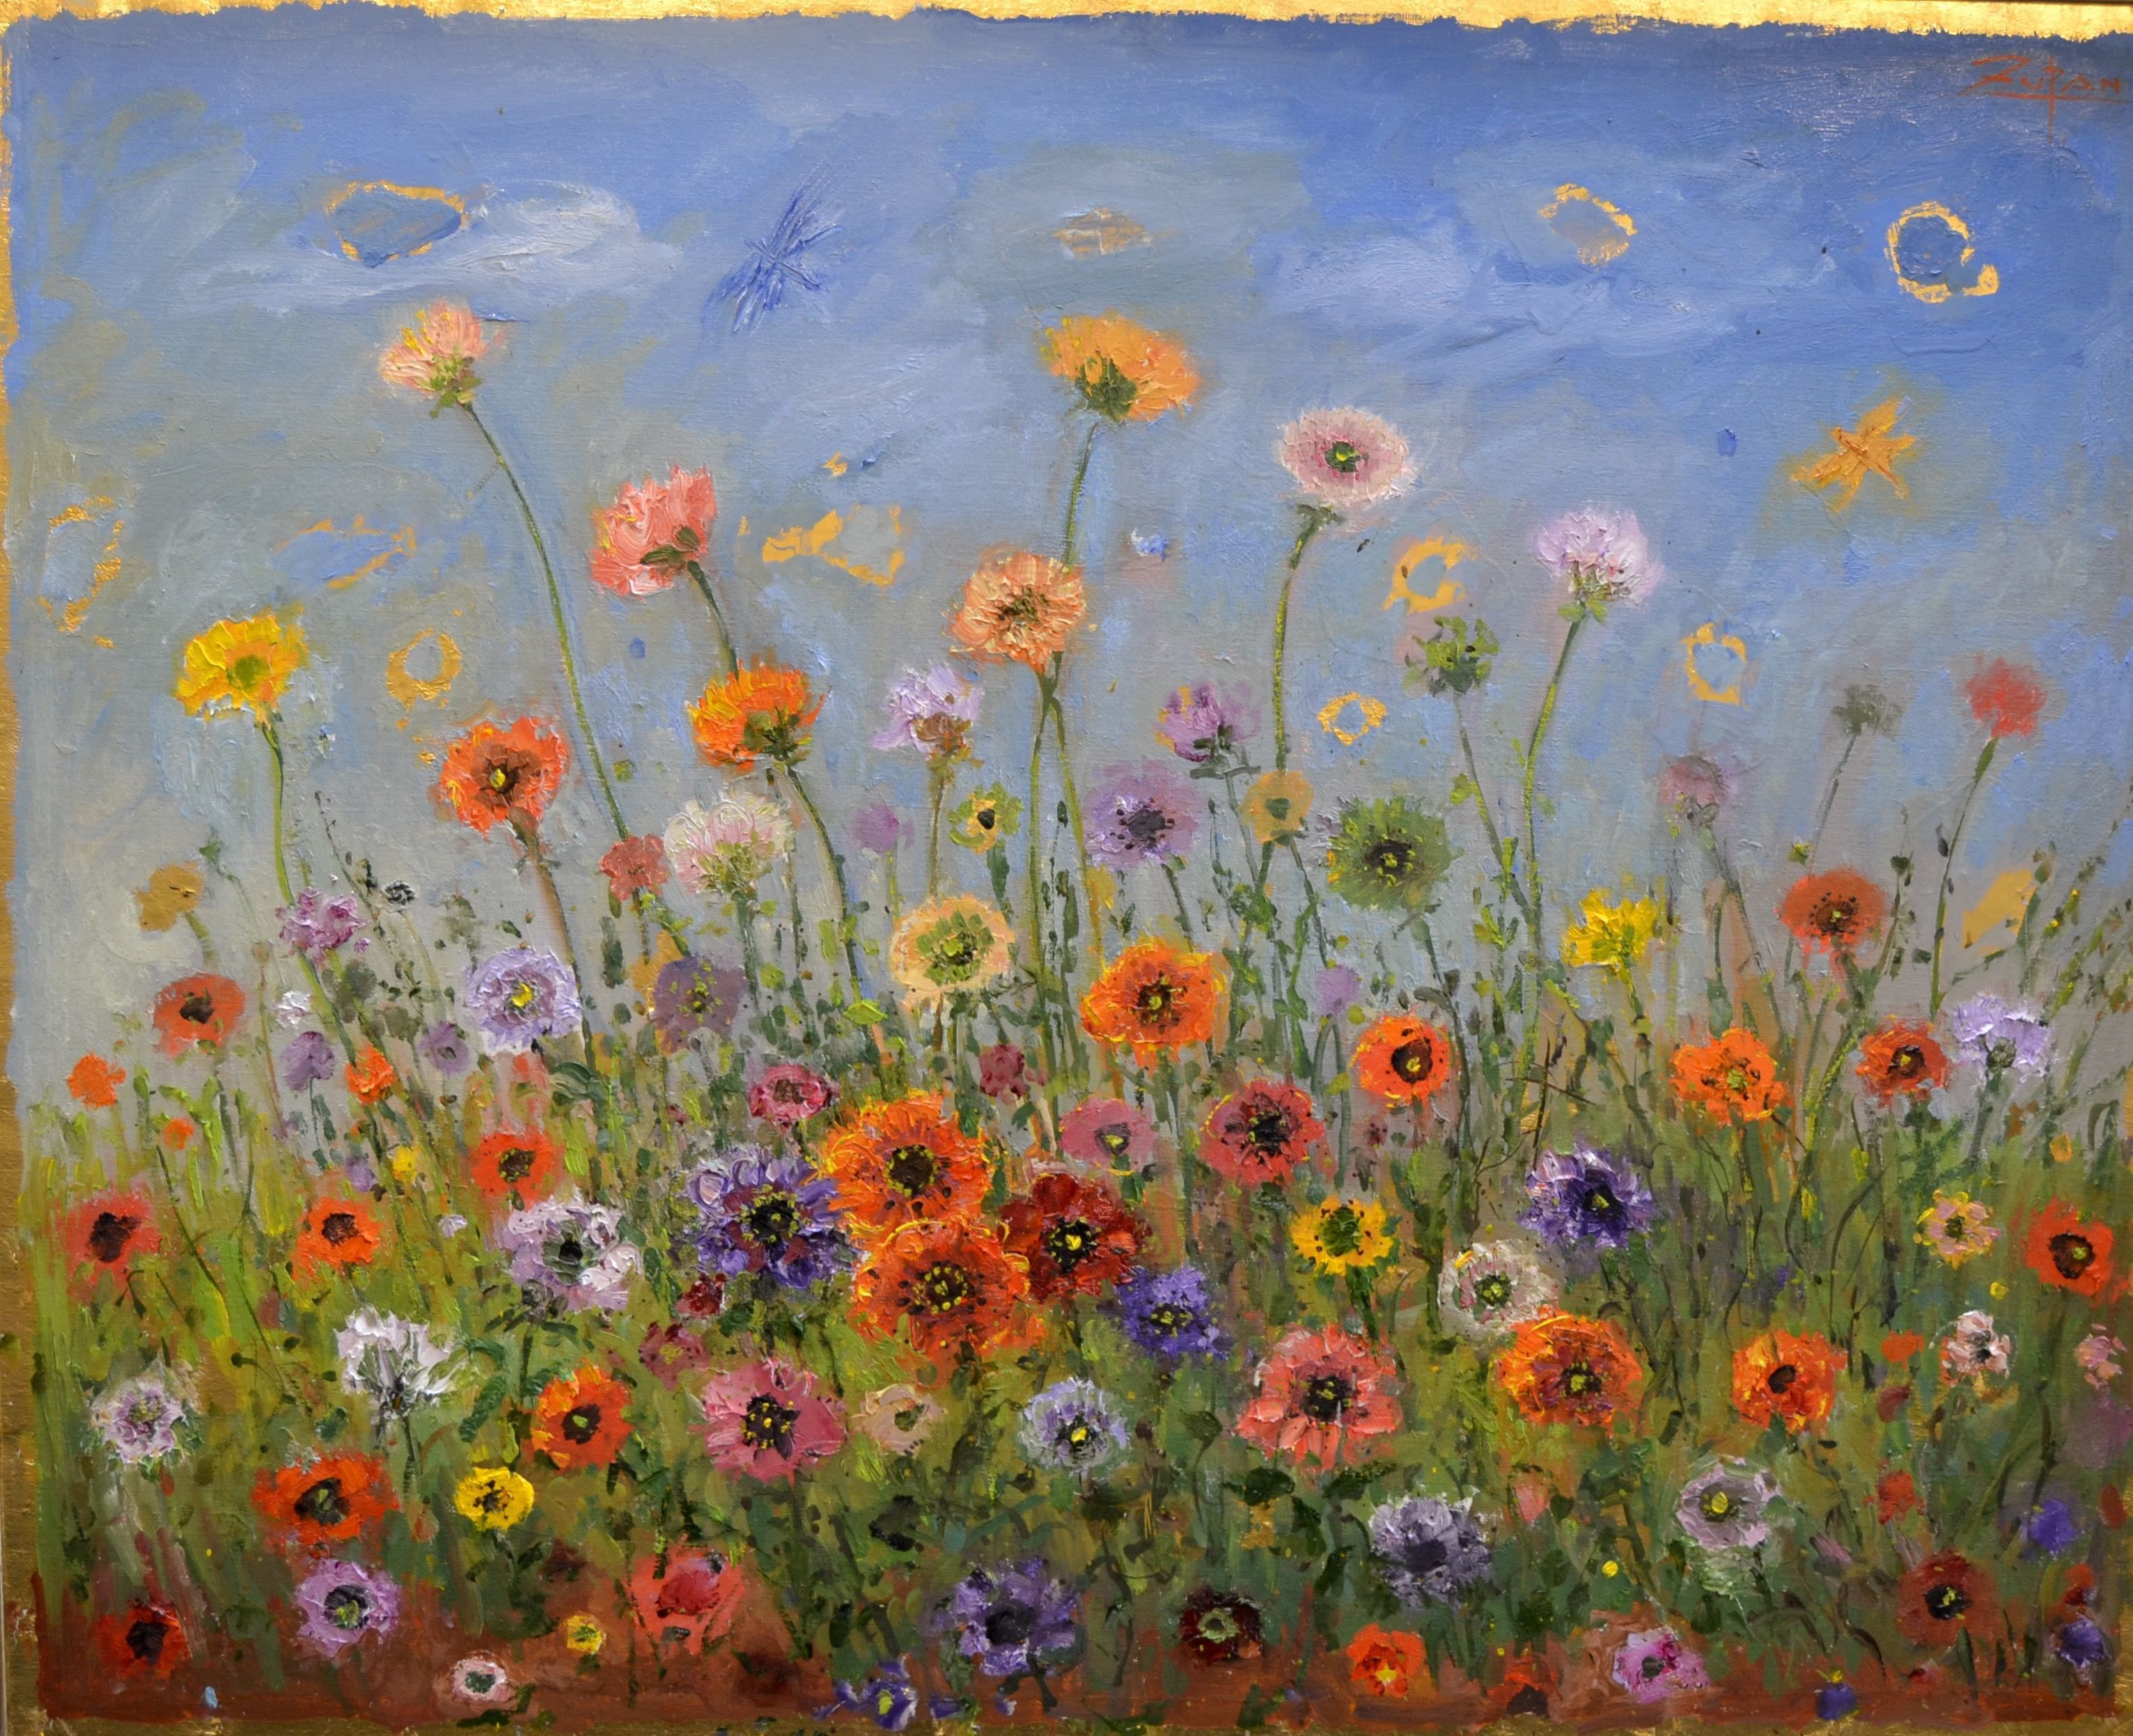 Bruno Zupan - Field of Poppies - Original oil painting - Off The Wall Gallery Houston